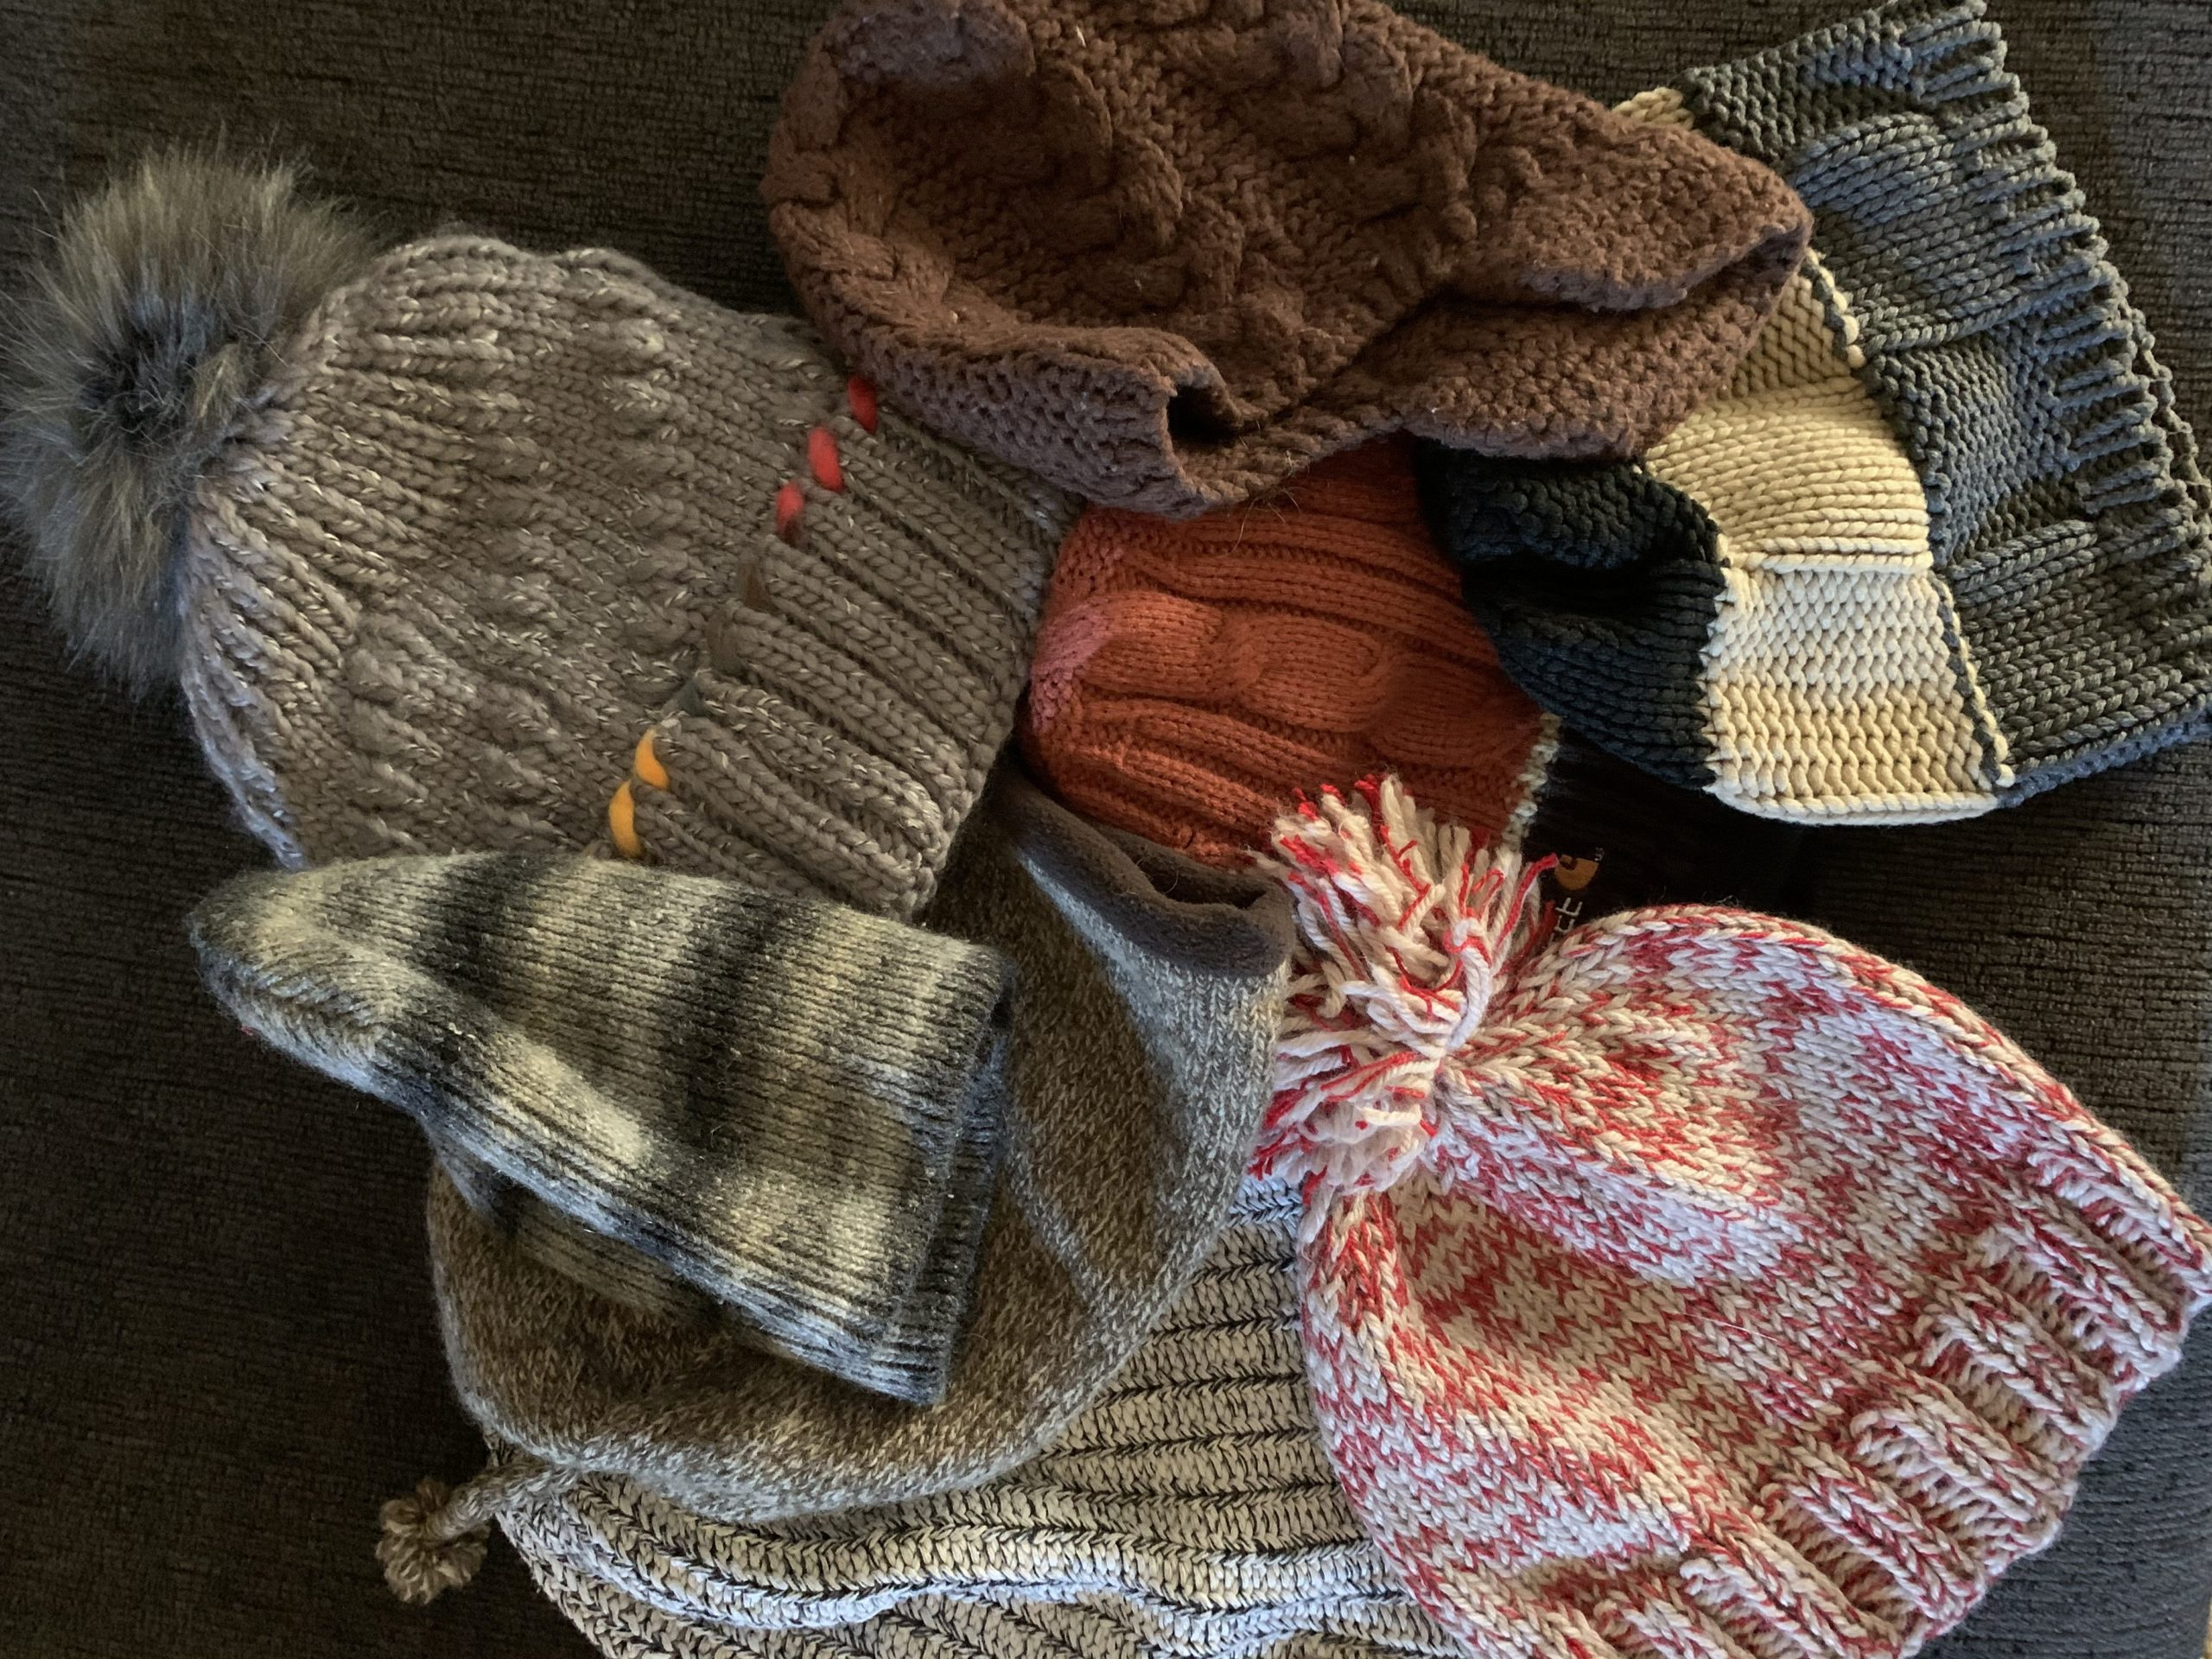 A pile of knitted hats